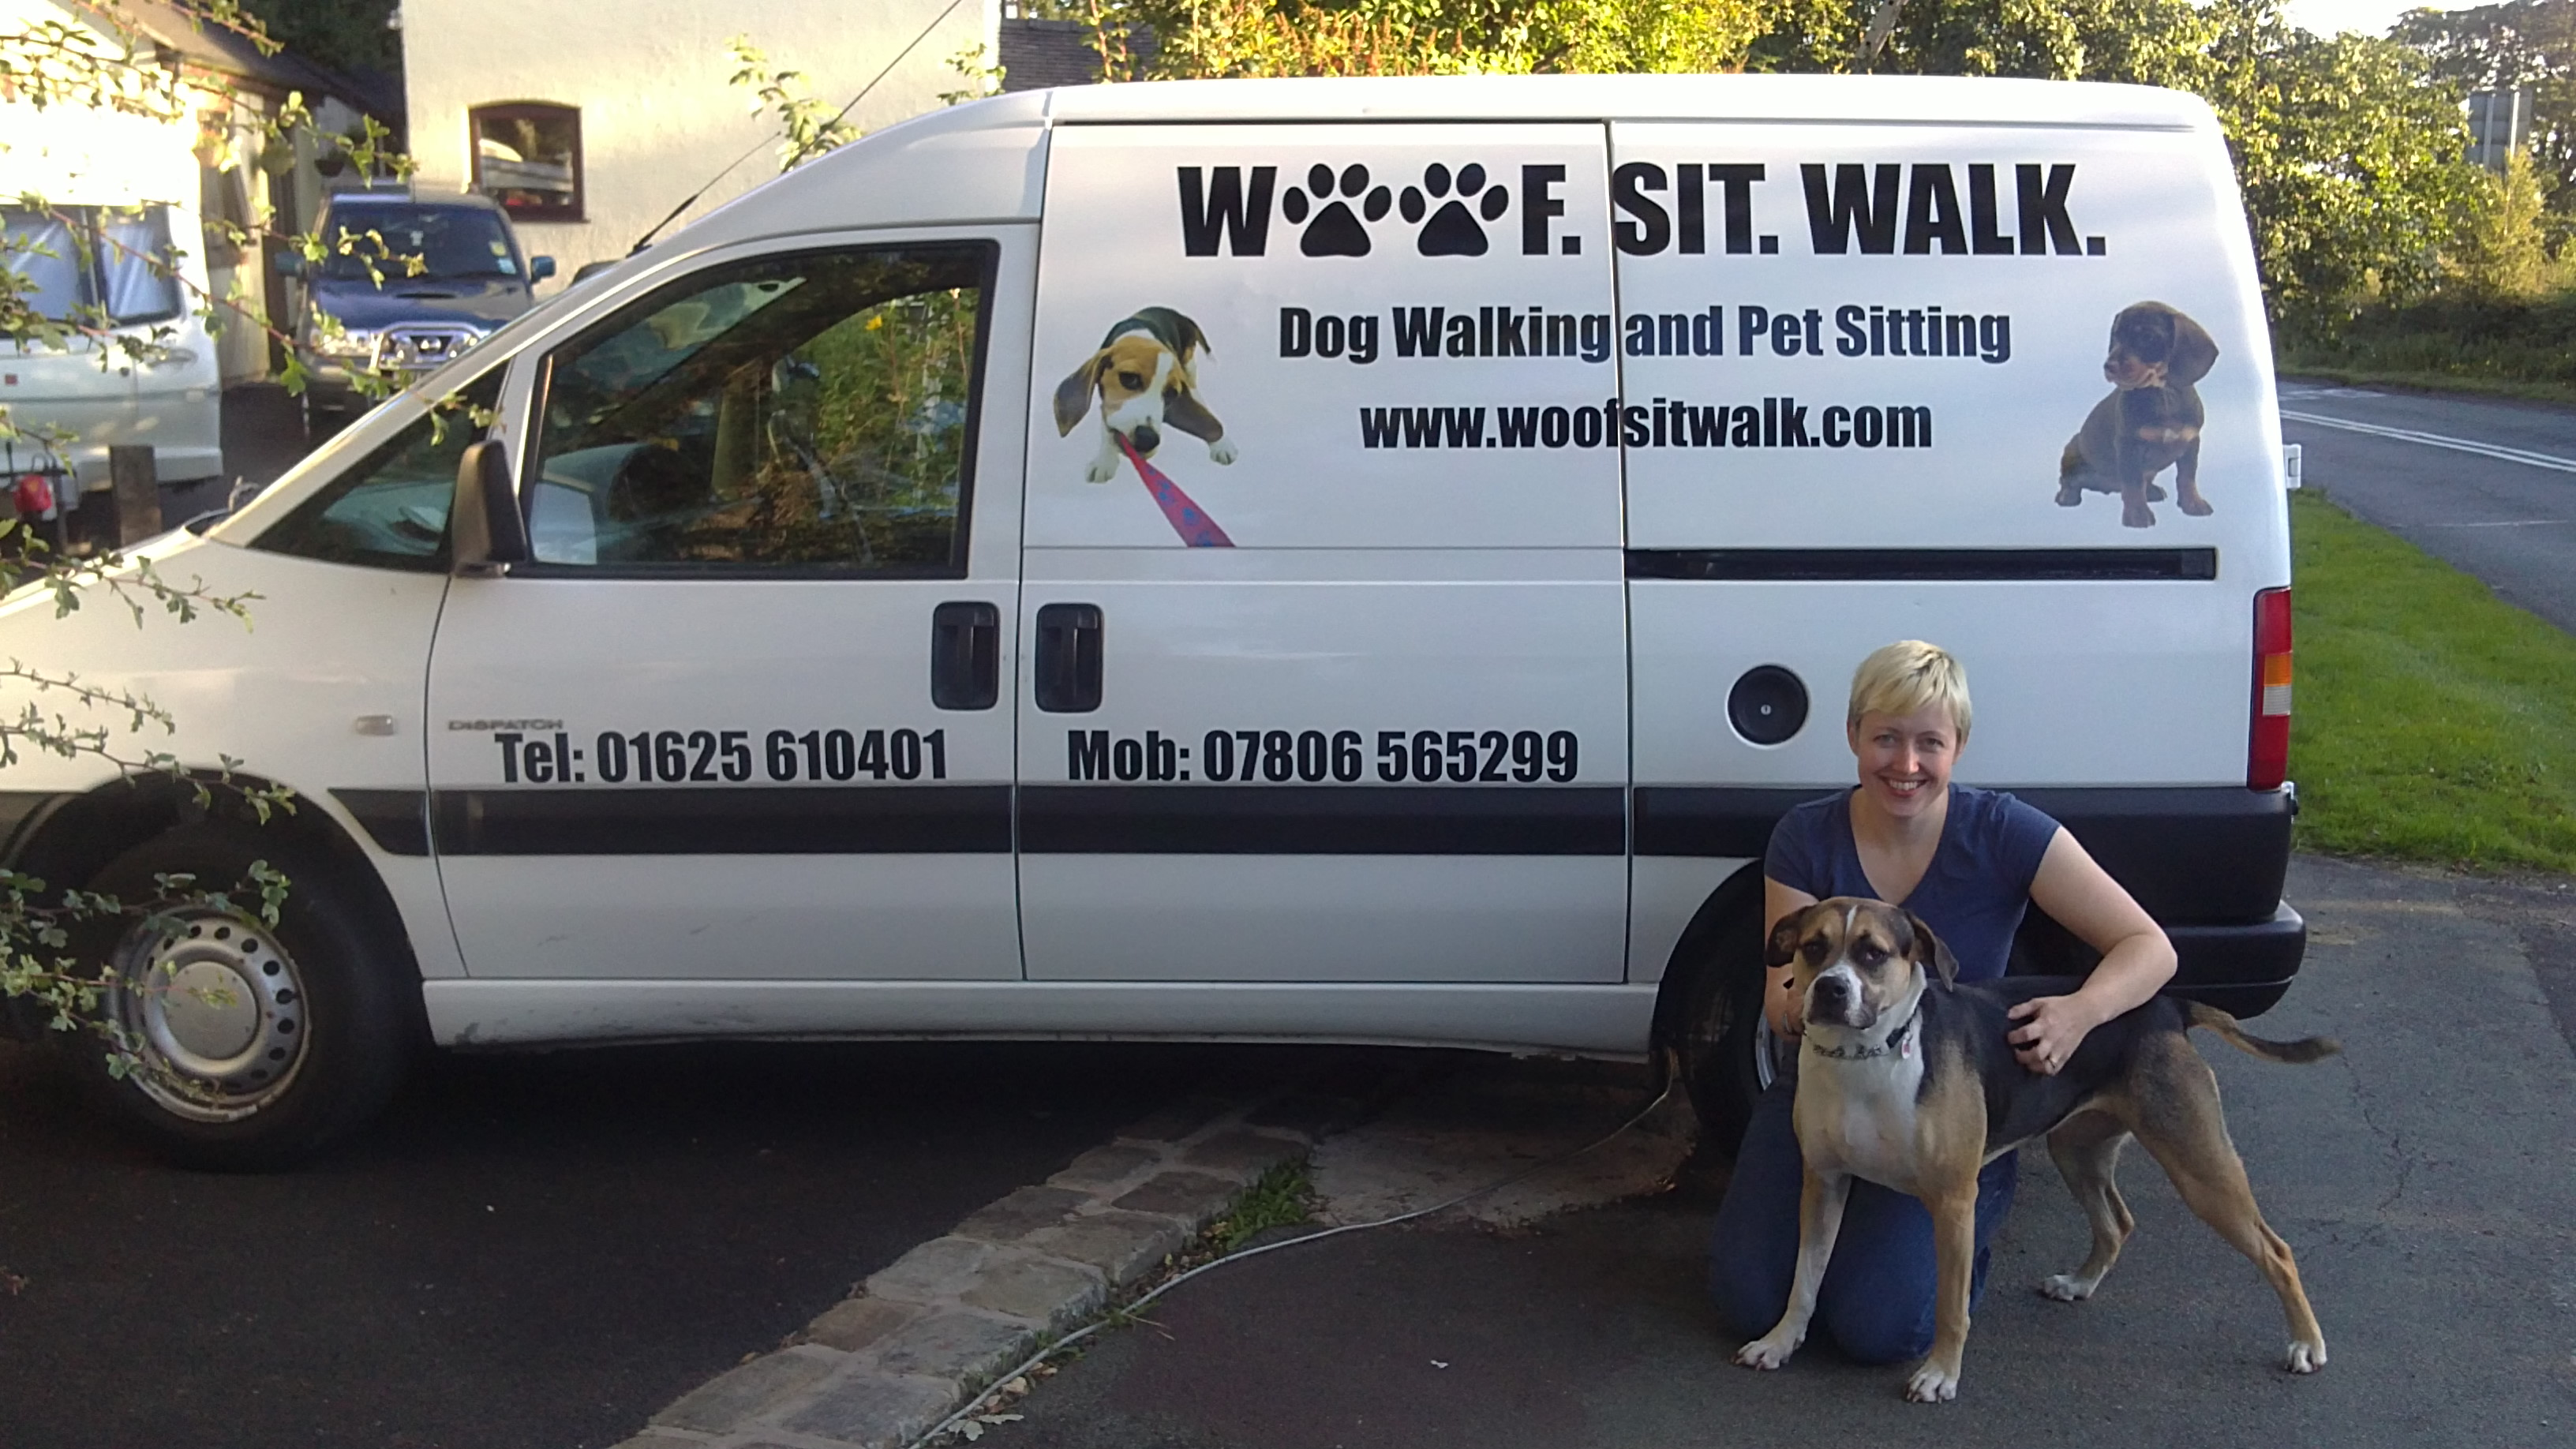 Dog Walking And Pet Sitting Service In Macclesfield And